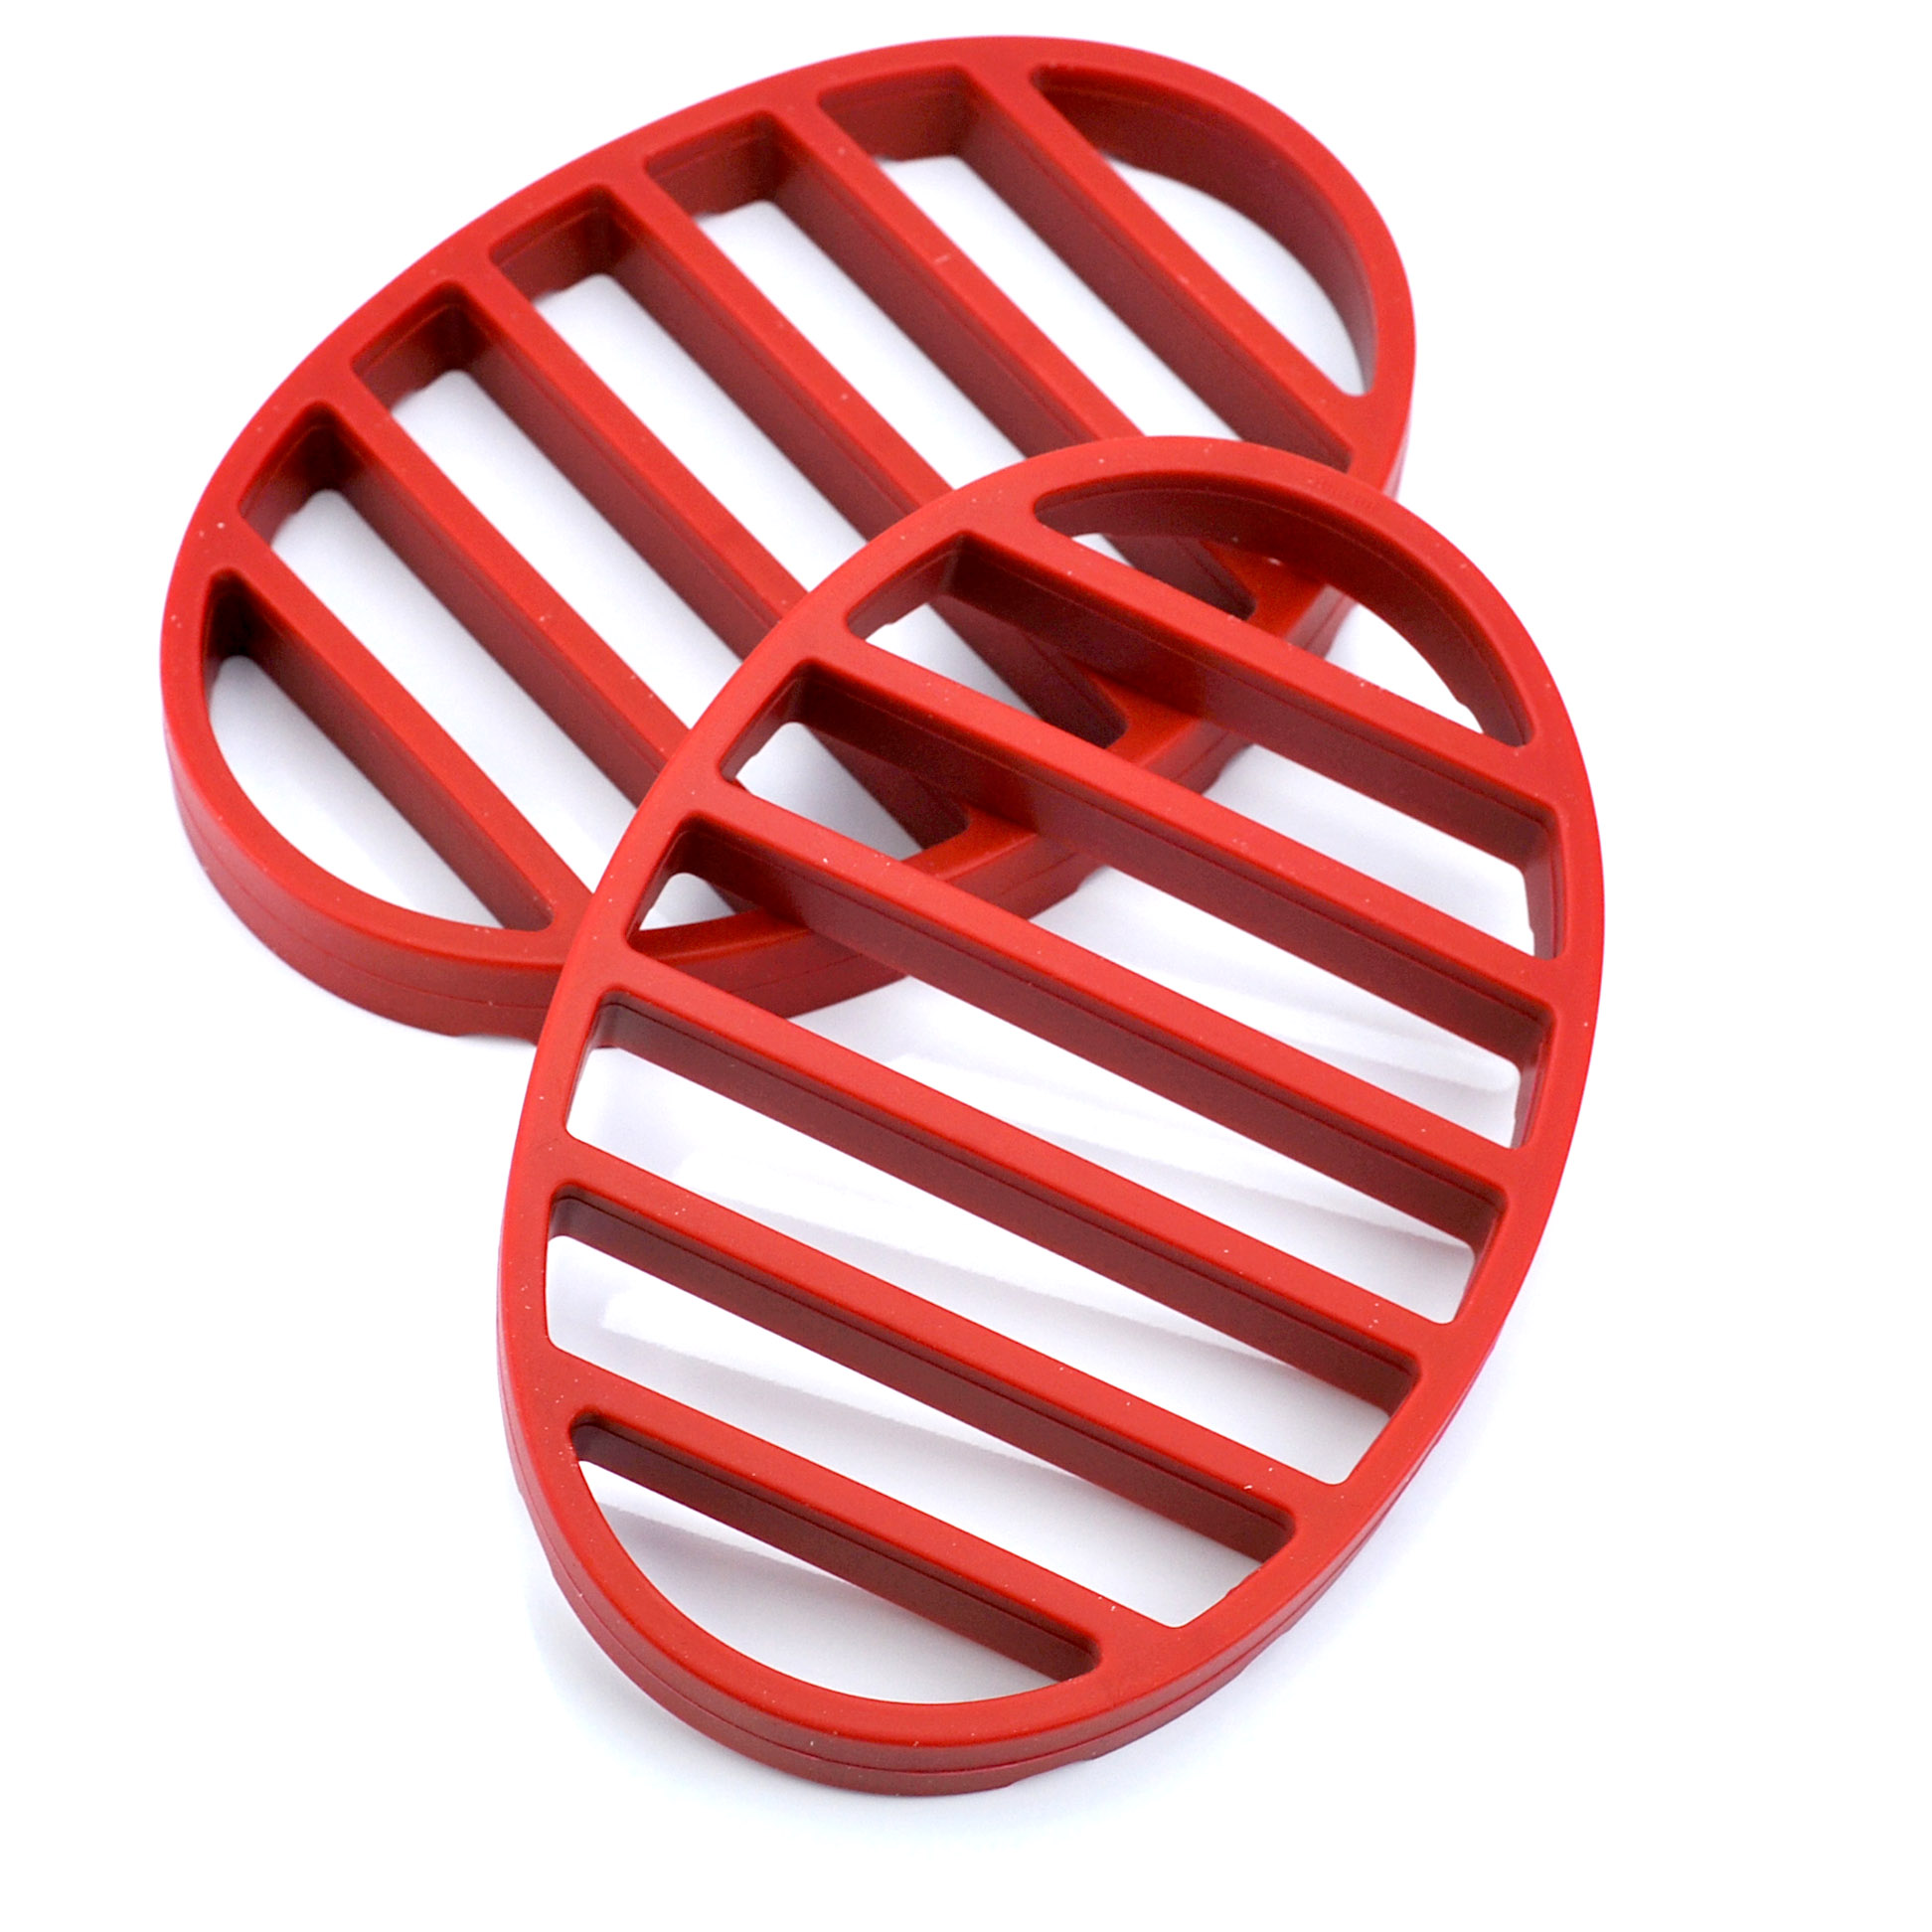 Oval Roasting Rack, Nonstick Silicone Roasting Rack For Turkey Red(pack Of 2) by Norpro Kitchenware